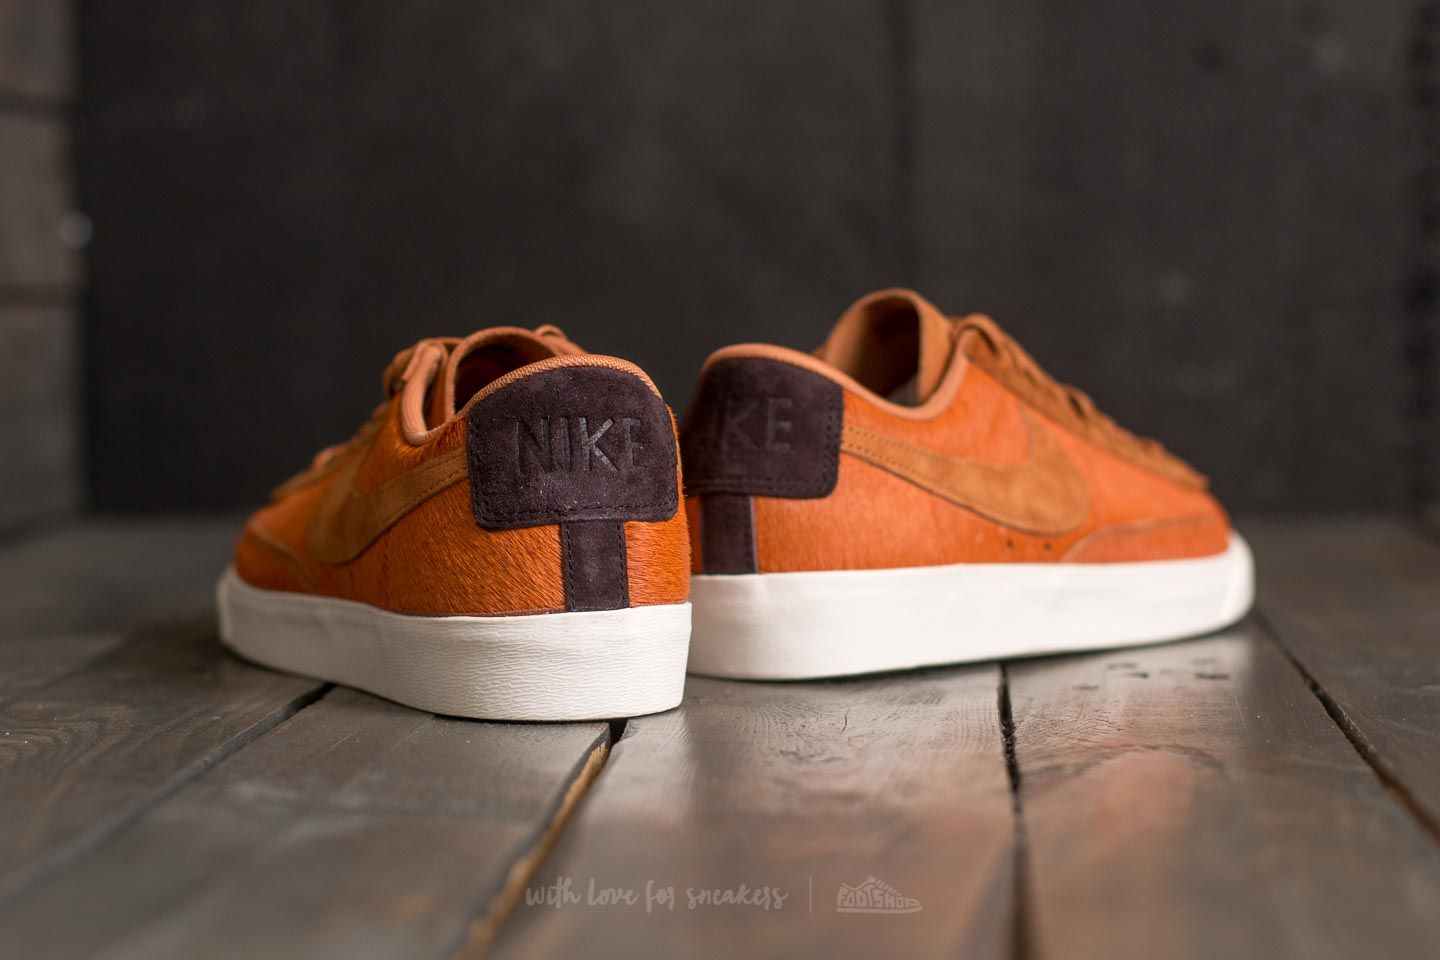 temperament shoes look for first look Nike W Blazer Low LX Cider/ Cider-Sail | Footshop